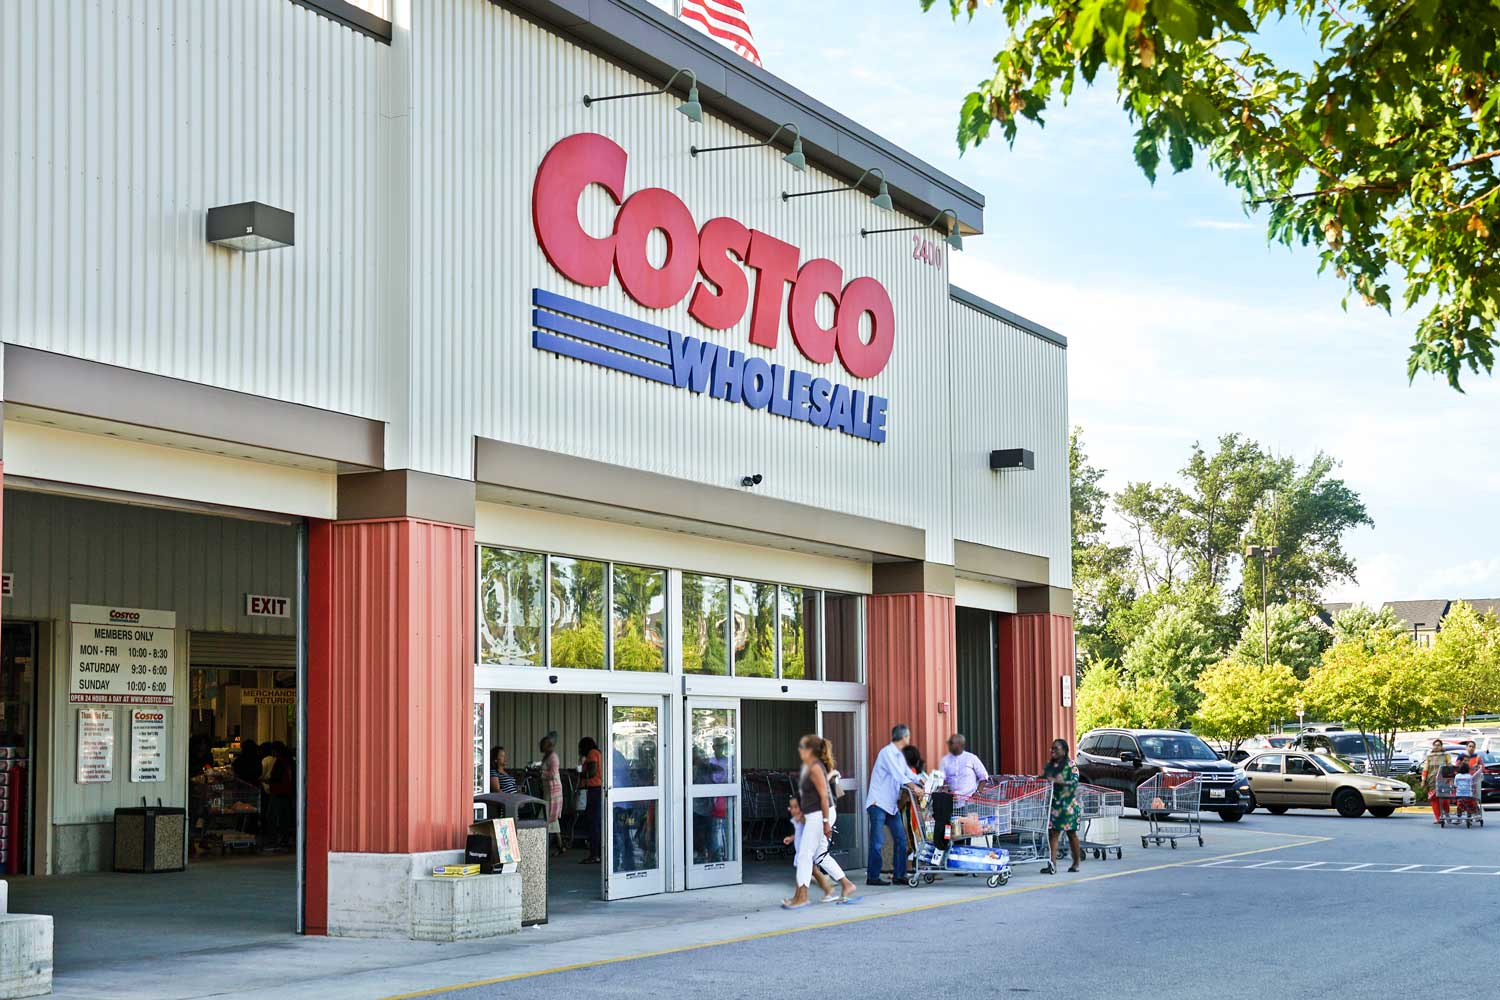 Costco is 15 minutes from Heritage Square Apartments in New Carrollton, MD